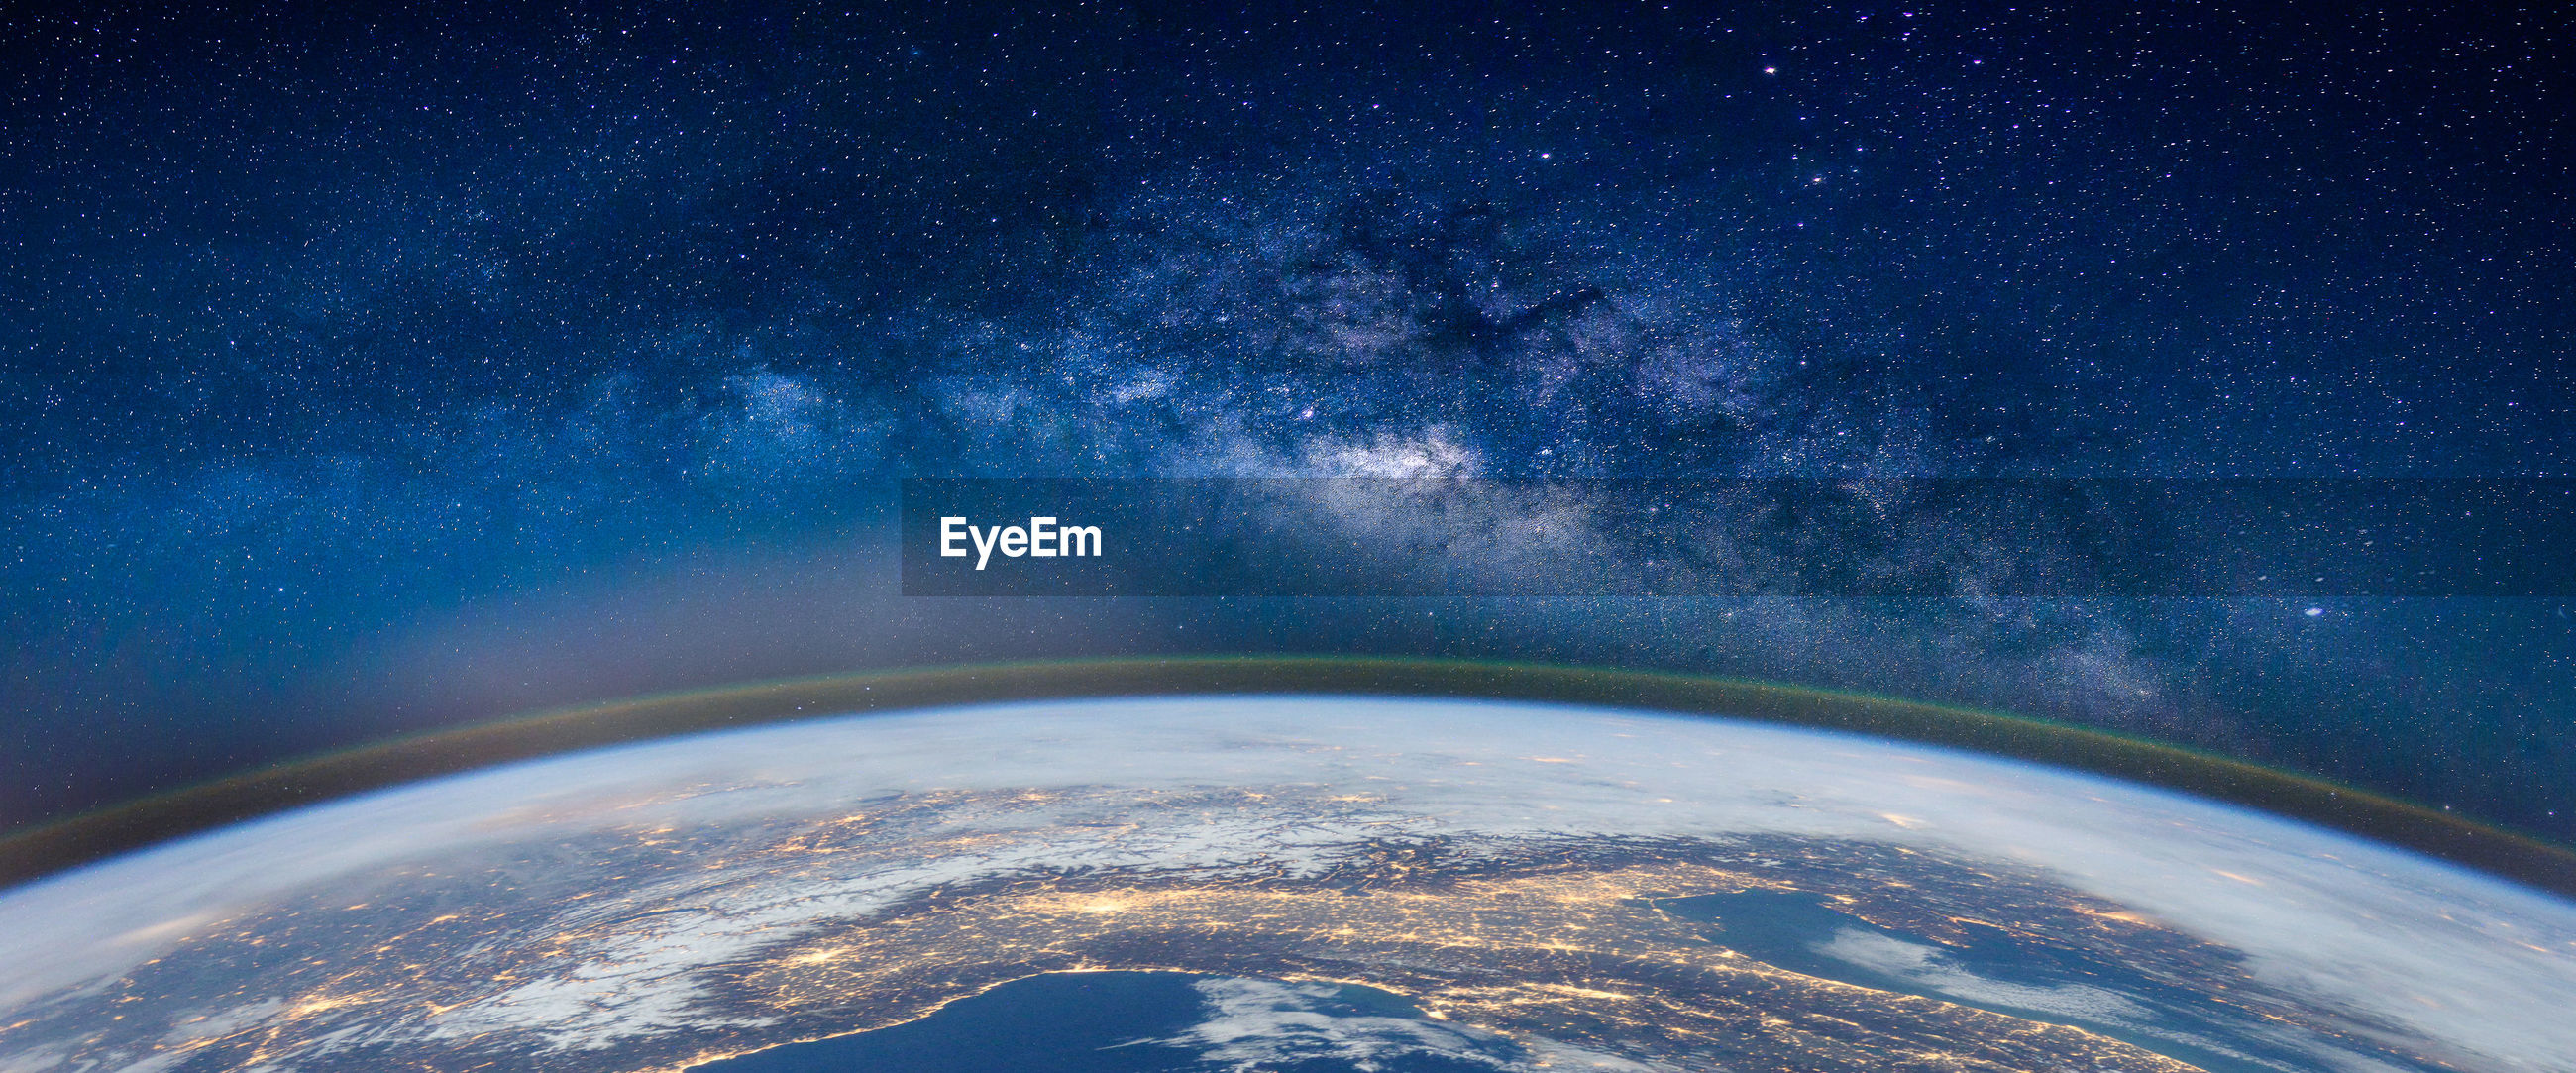 Fish-eye lens view of earth against star field